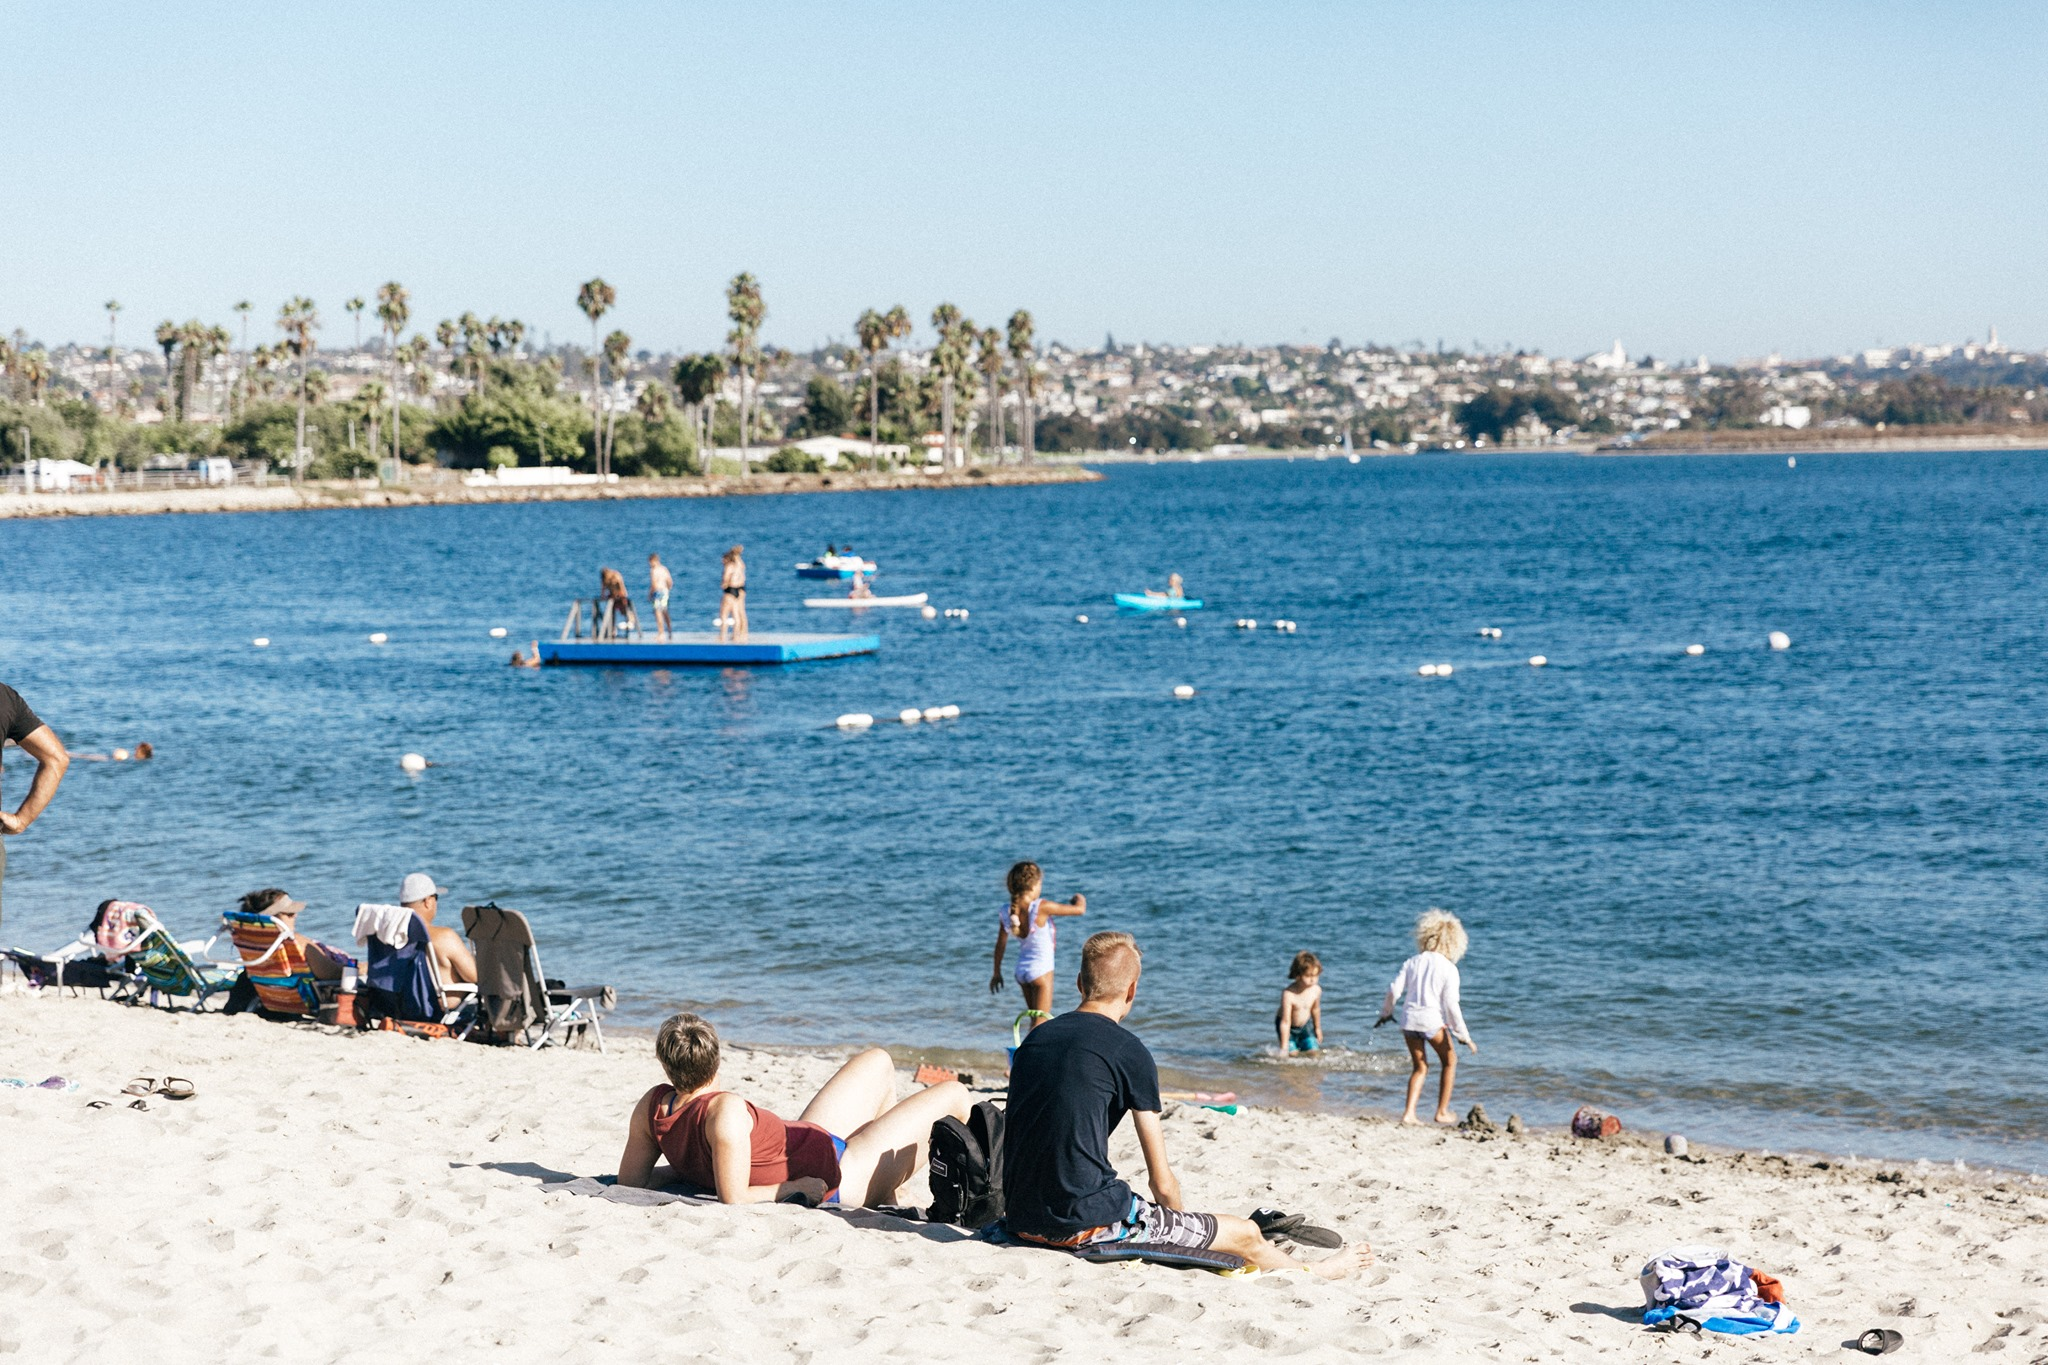 People relaxing on the beach in San Diego